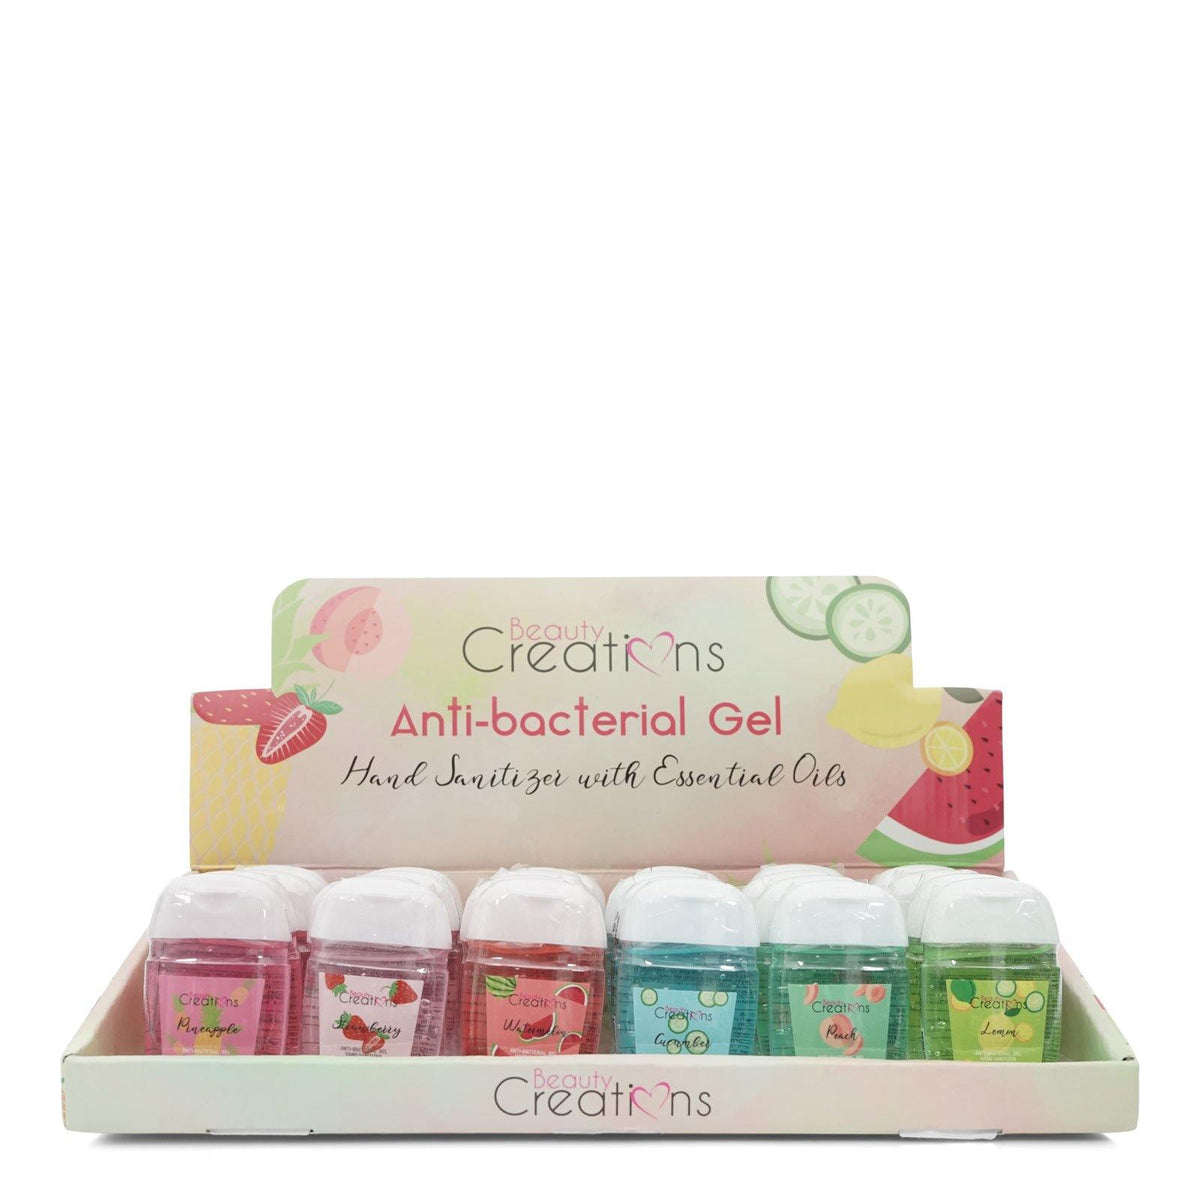 Beauty Creations Assorted Anti-bacterial Gel Display, 24 count (24/cs)